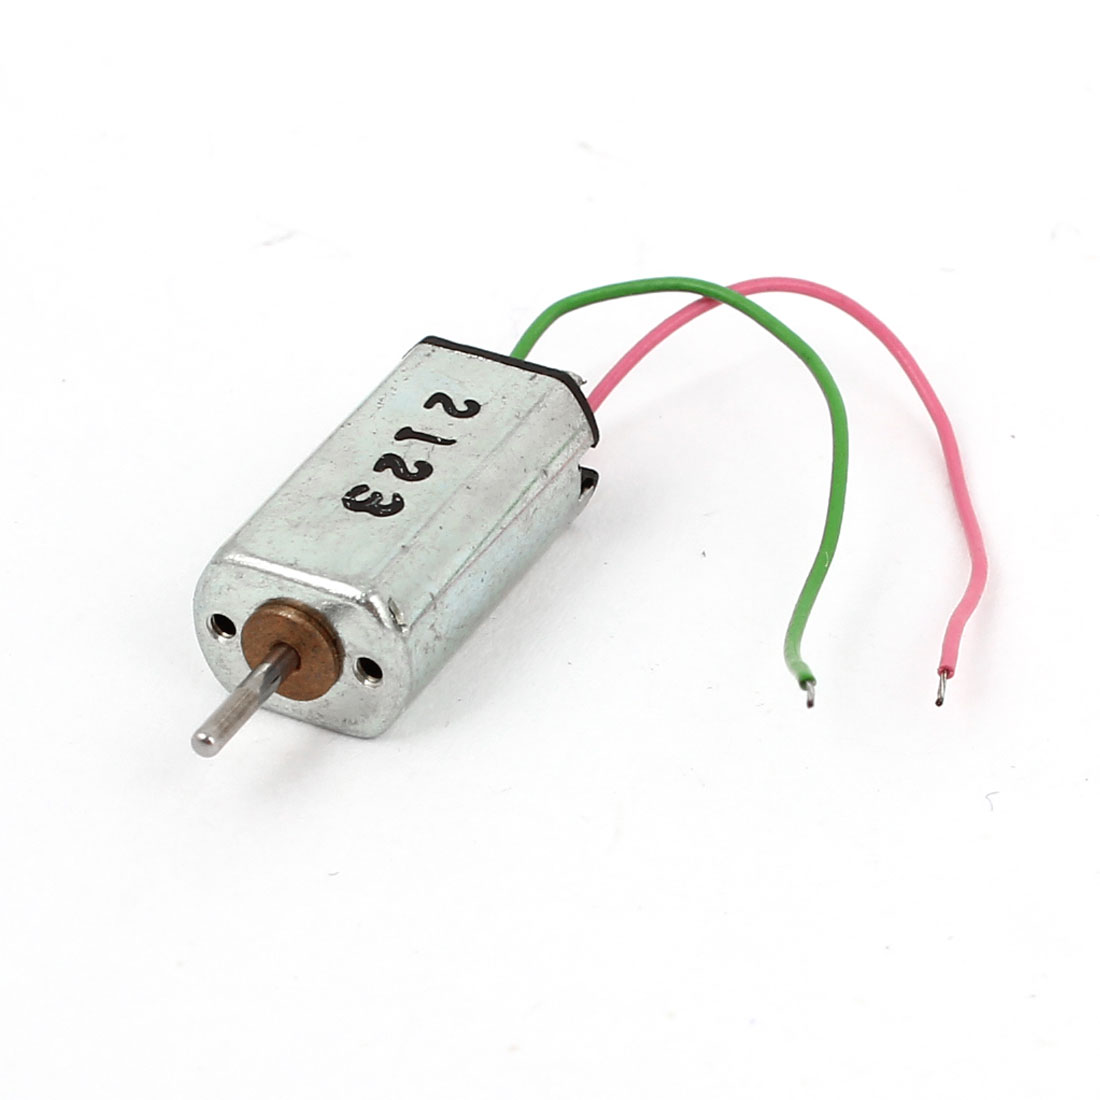 K20 DC 1.5-6V 5000RPM High Speed 1mm Dia Shaft Micro Motor for RC Ship Plane Toys